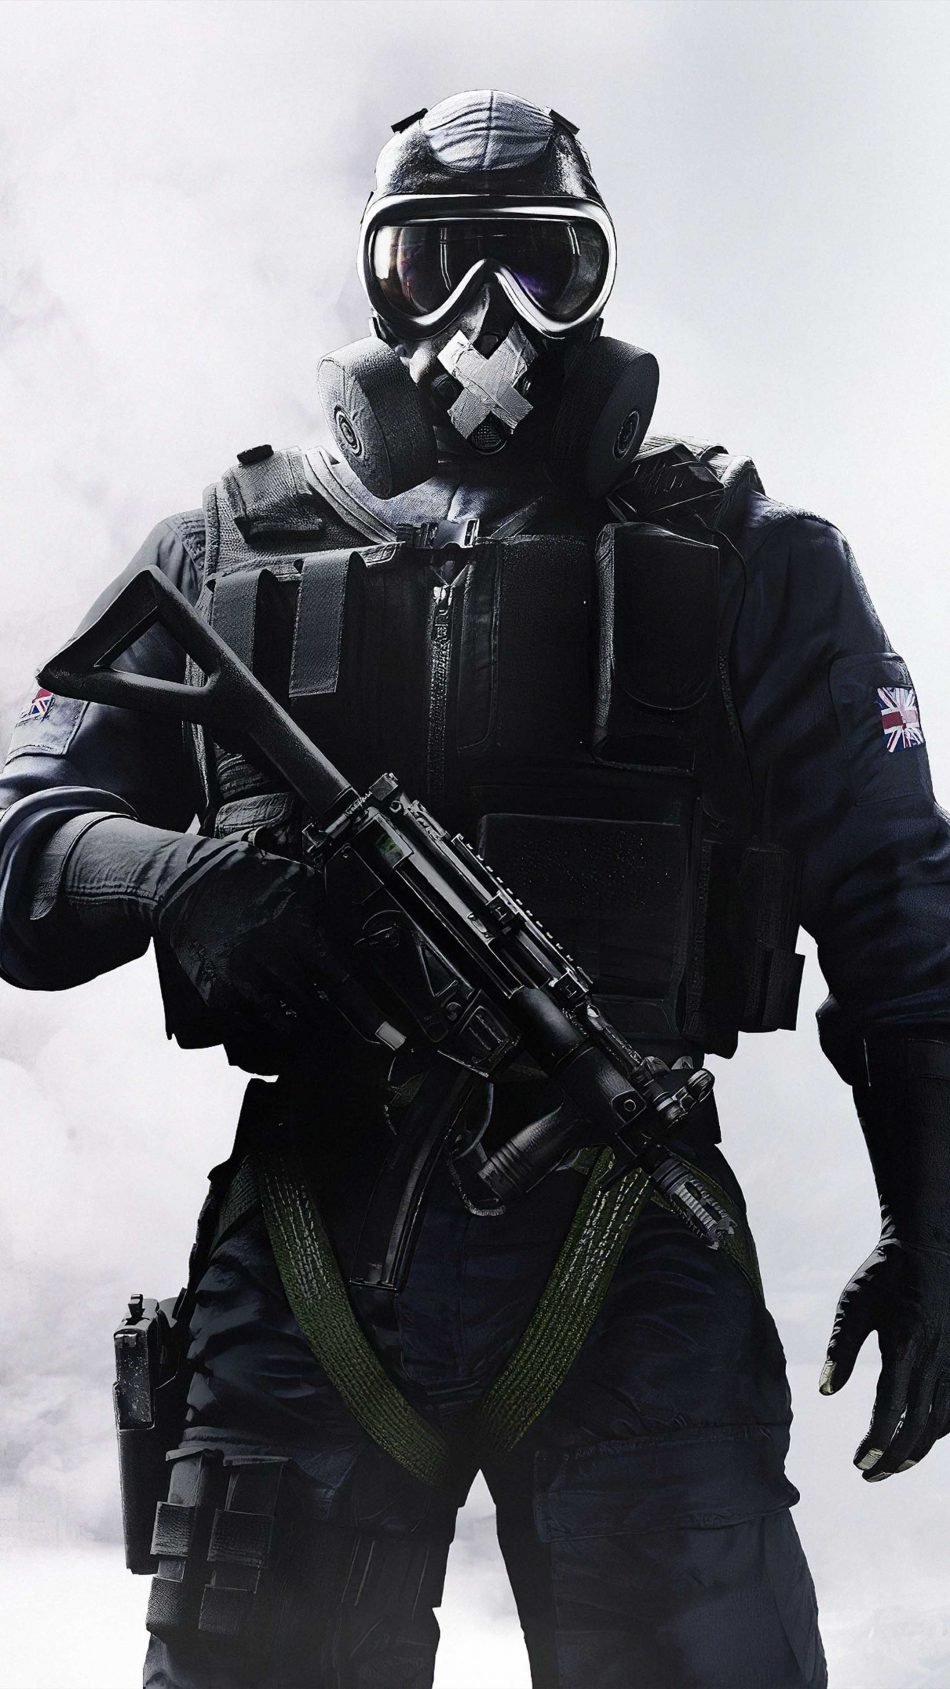 Soldier Mask Man Rainbow Six Siege 4K Ultra HD Mobile Wallpaper